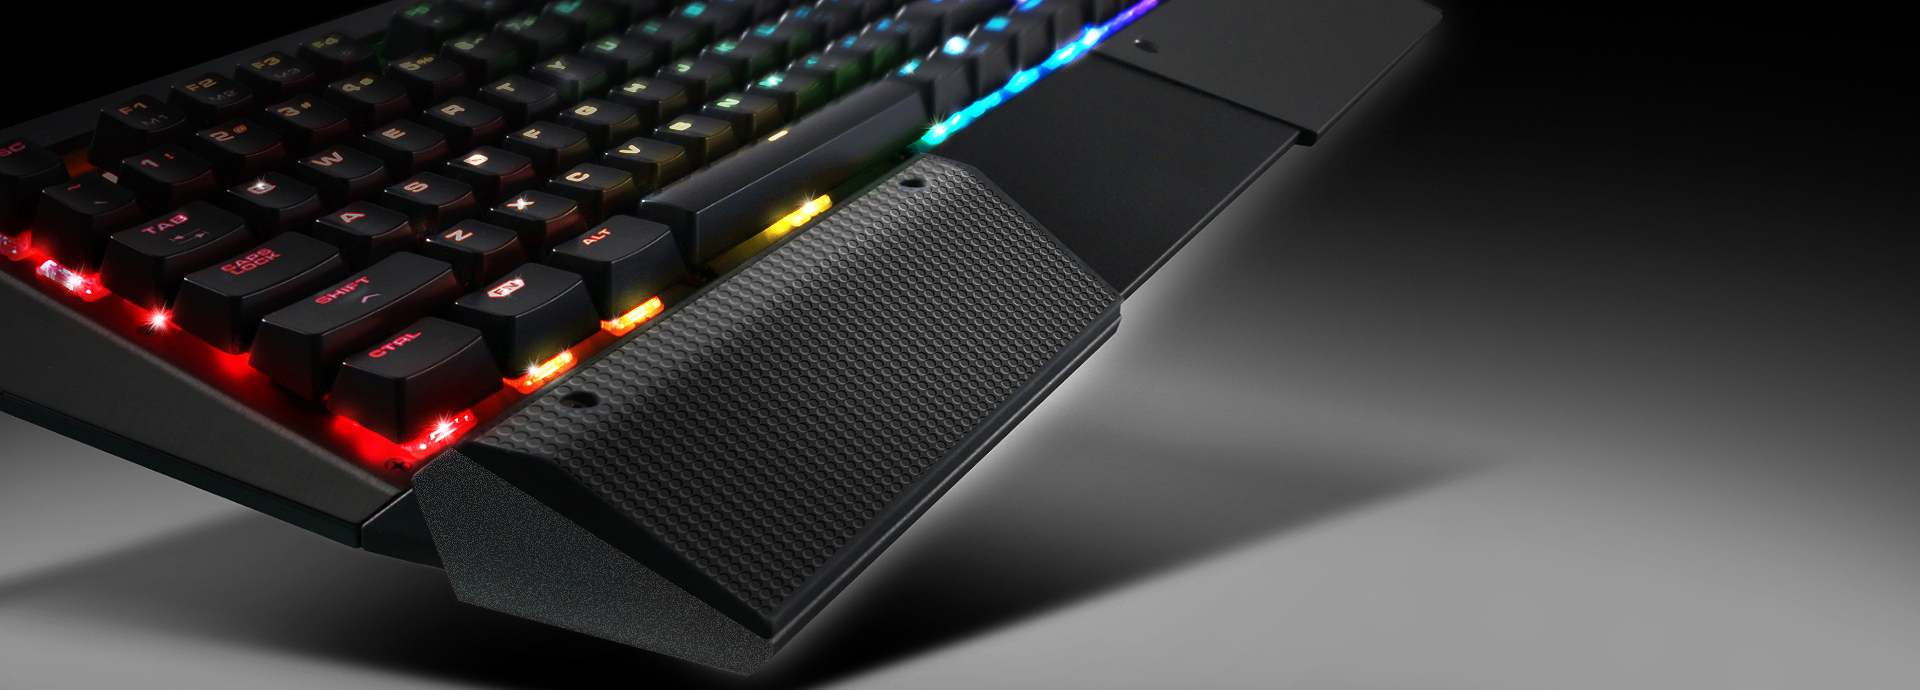 COUGAR ATTACK X3 RGB - COUGAR UIX™ System